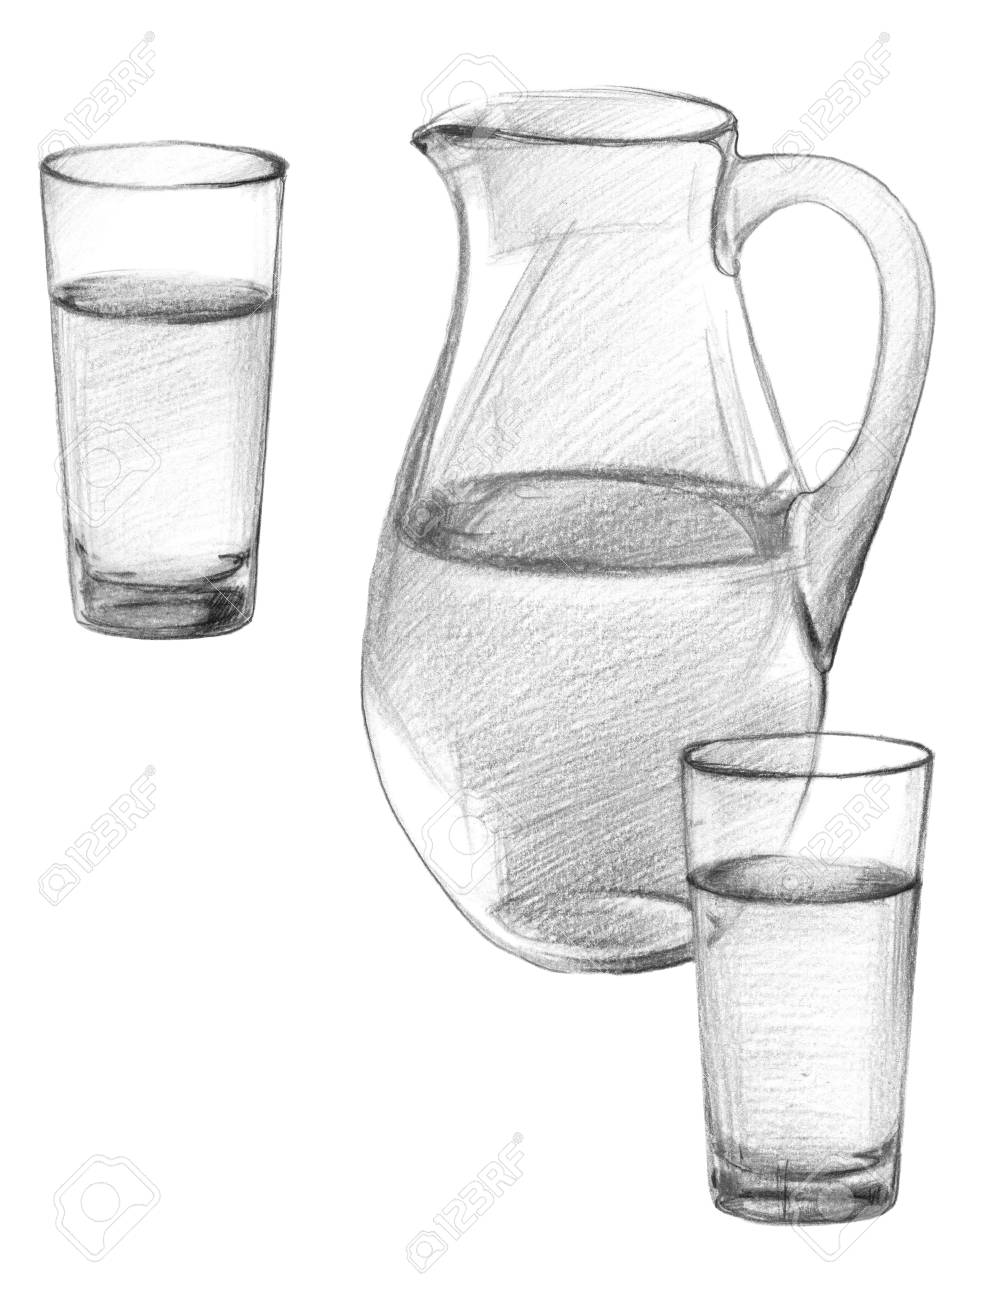 An image of a glass jug and two glasses of drinking water graphite pencil drawing